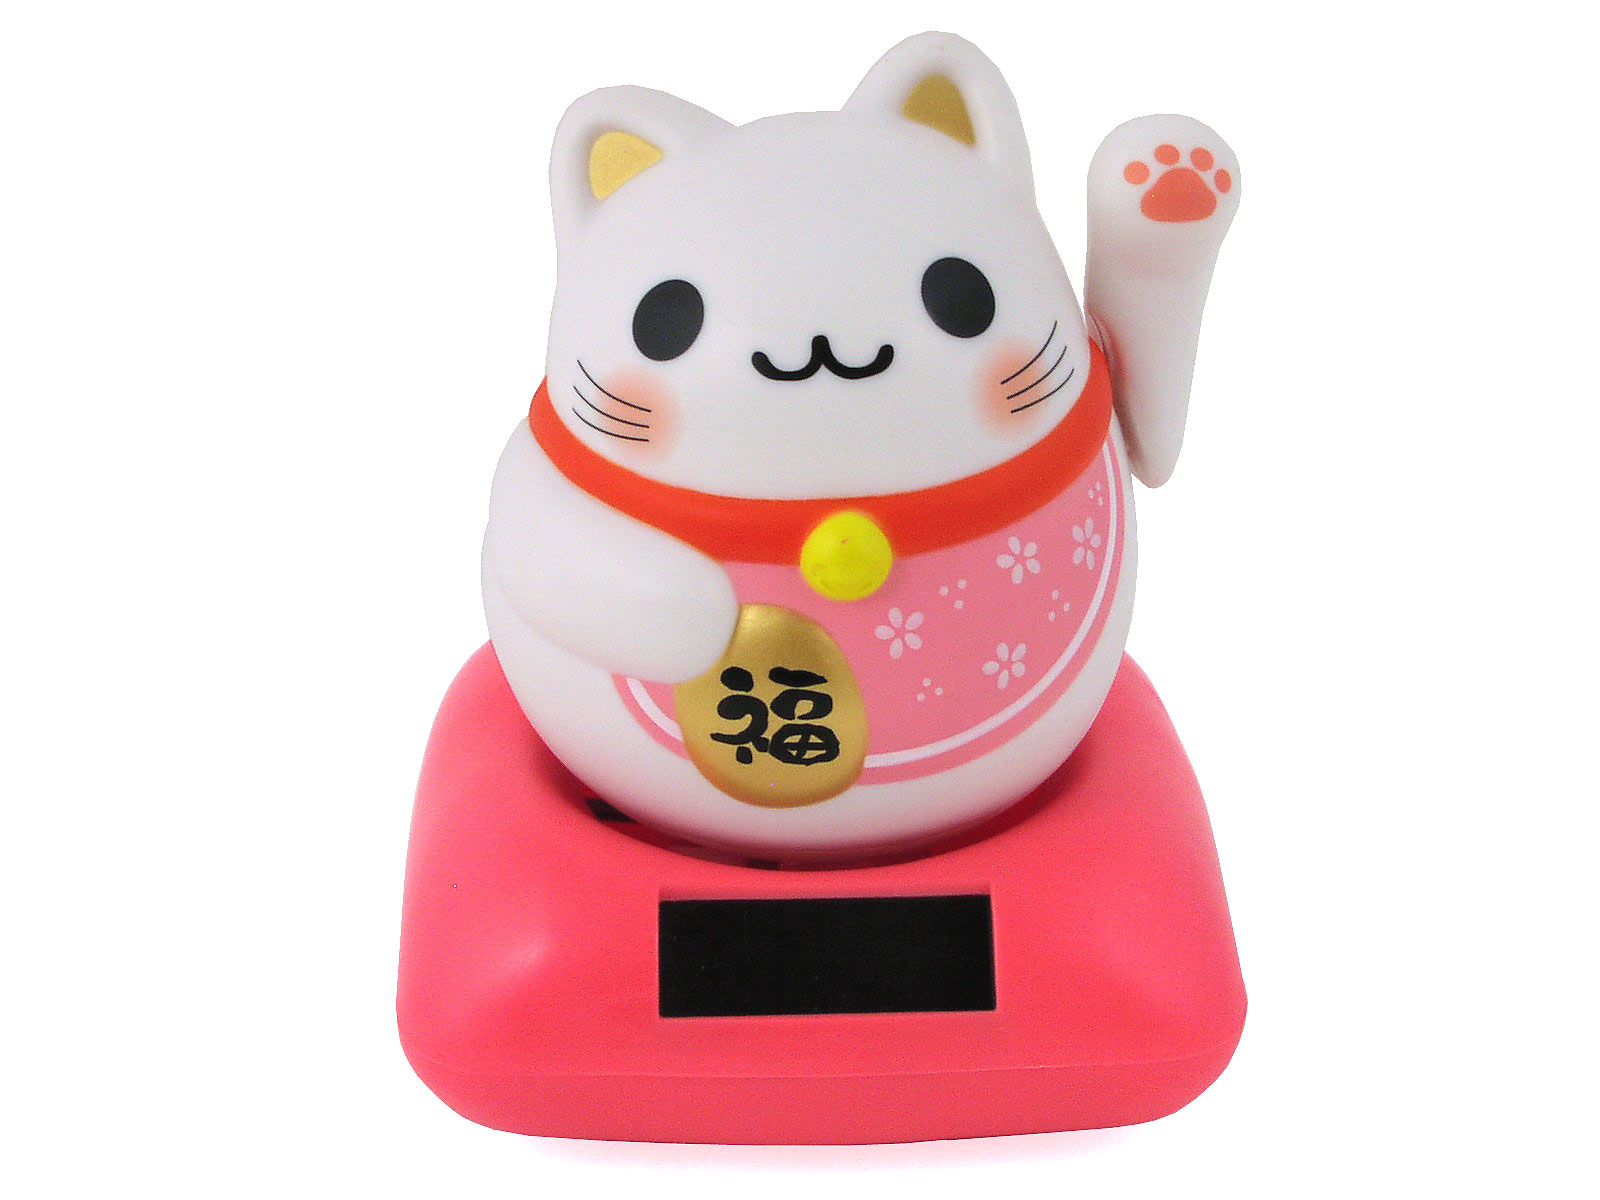 Adorable Cherry Blossom Pink Solar Powered Lucky Cat - photo#29